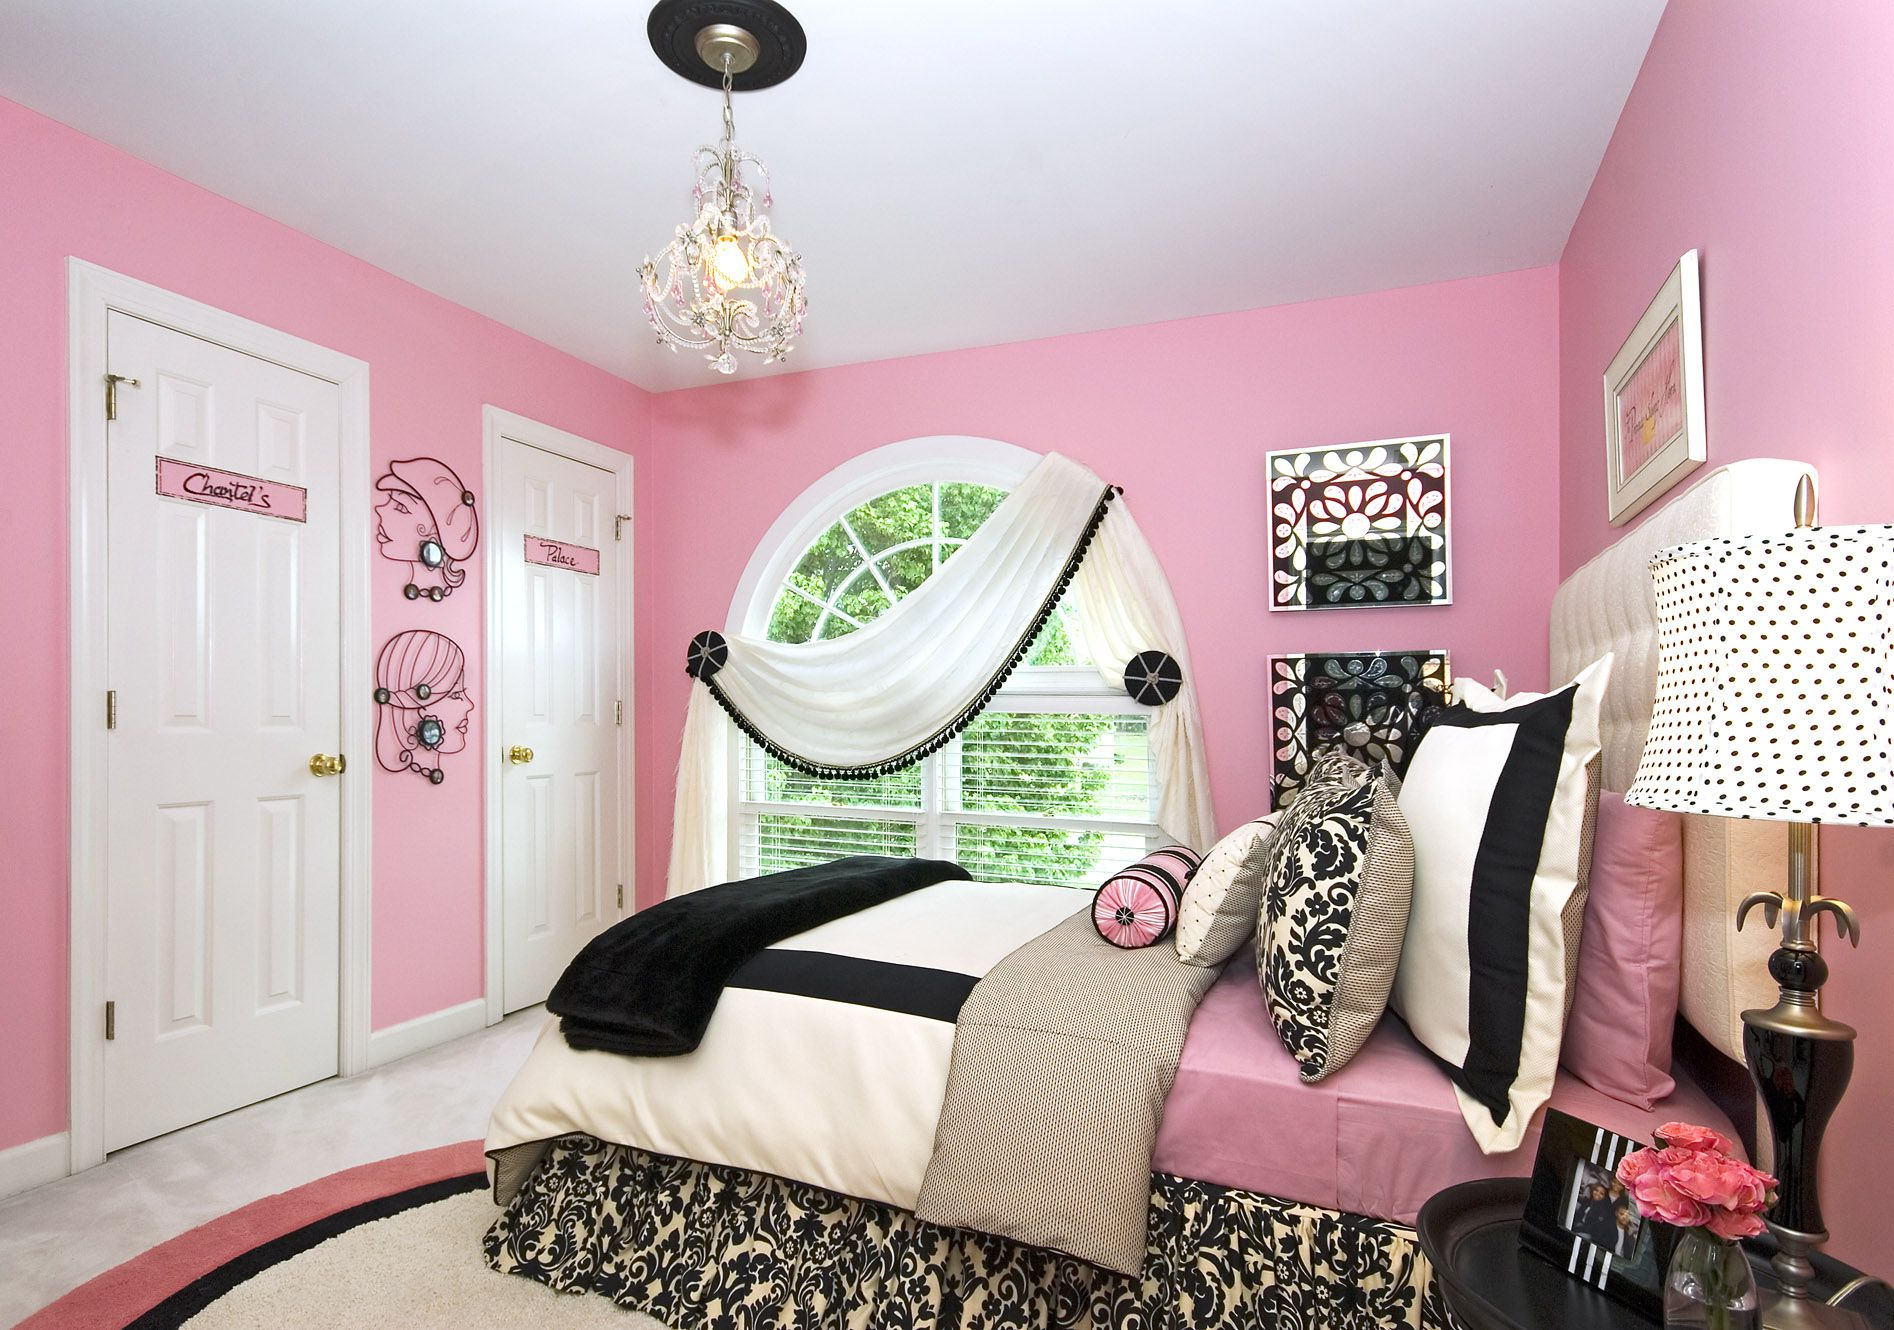 Bon Place Gorgeous Bed Inside Cute Girls Bedroom Decor With Black Nightstands  And Pink Painted Wall